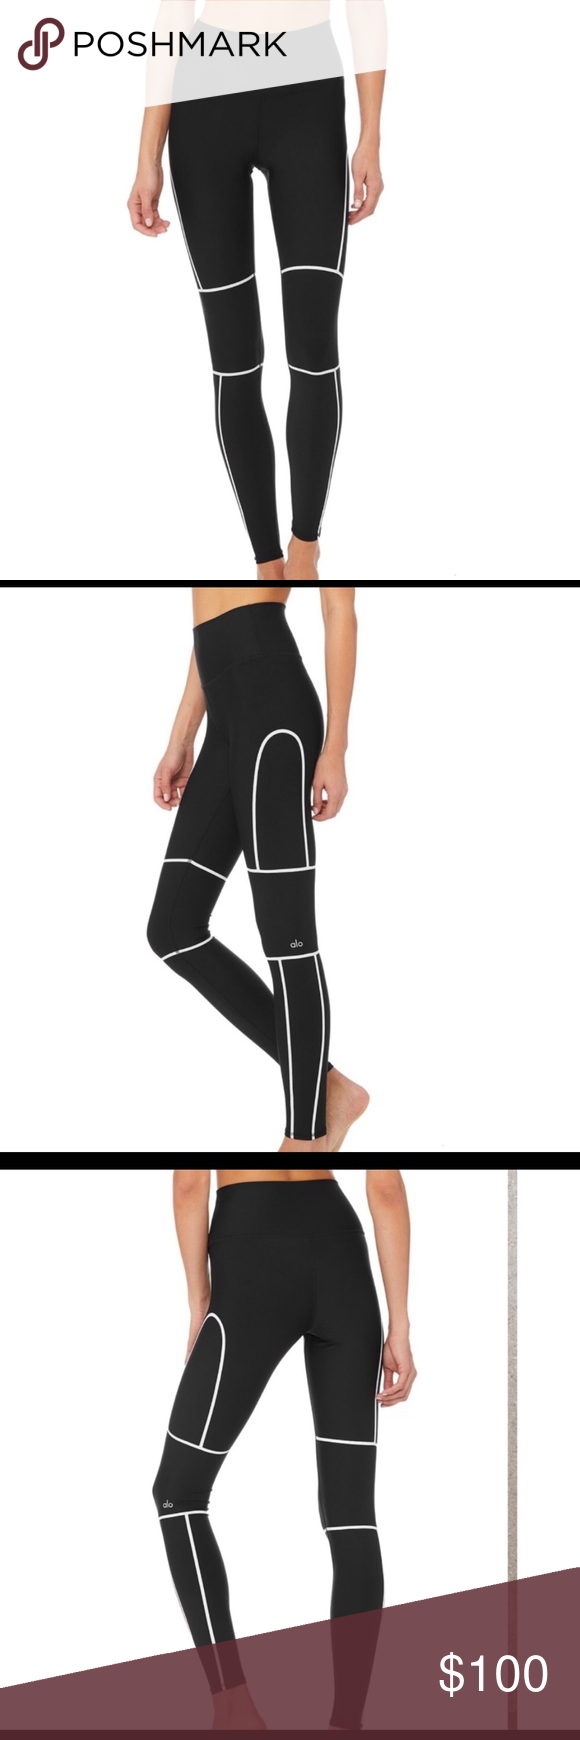 9537a5de55 🌔XS Alo Yoga Halftime Leggings 🌔 New with tags, never been worn. High  waisted and full length. Super cute and comfortable! ALO Yoga Pants Leggings